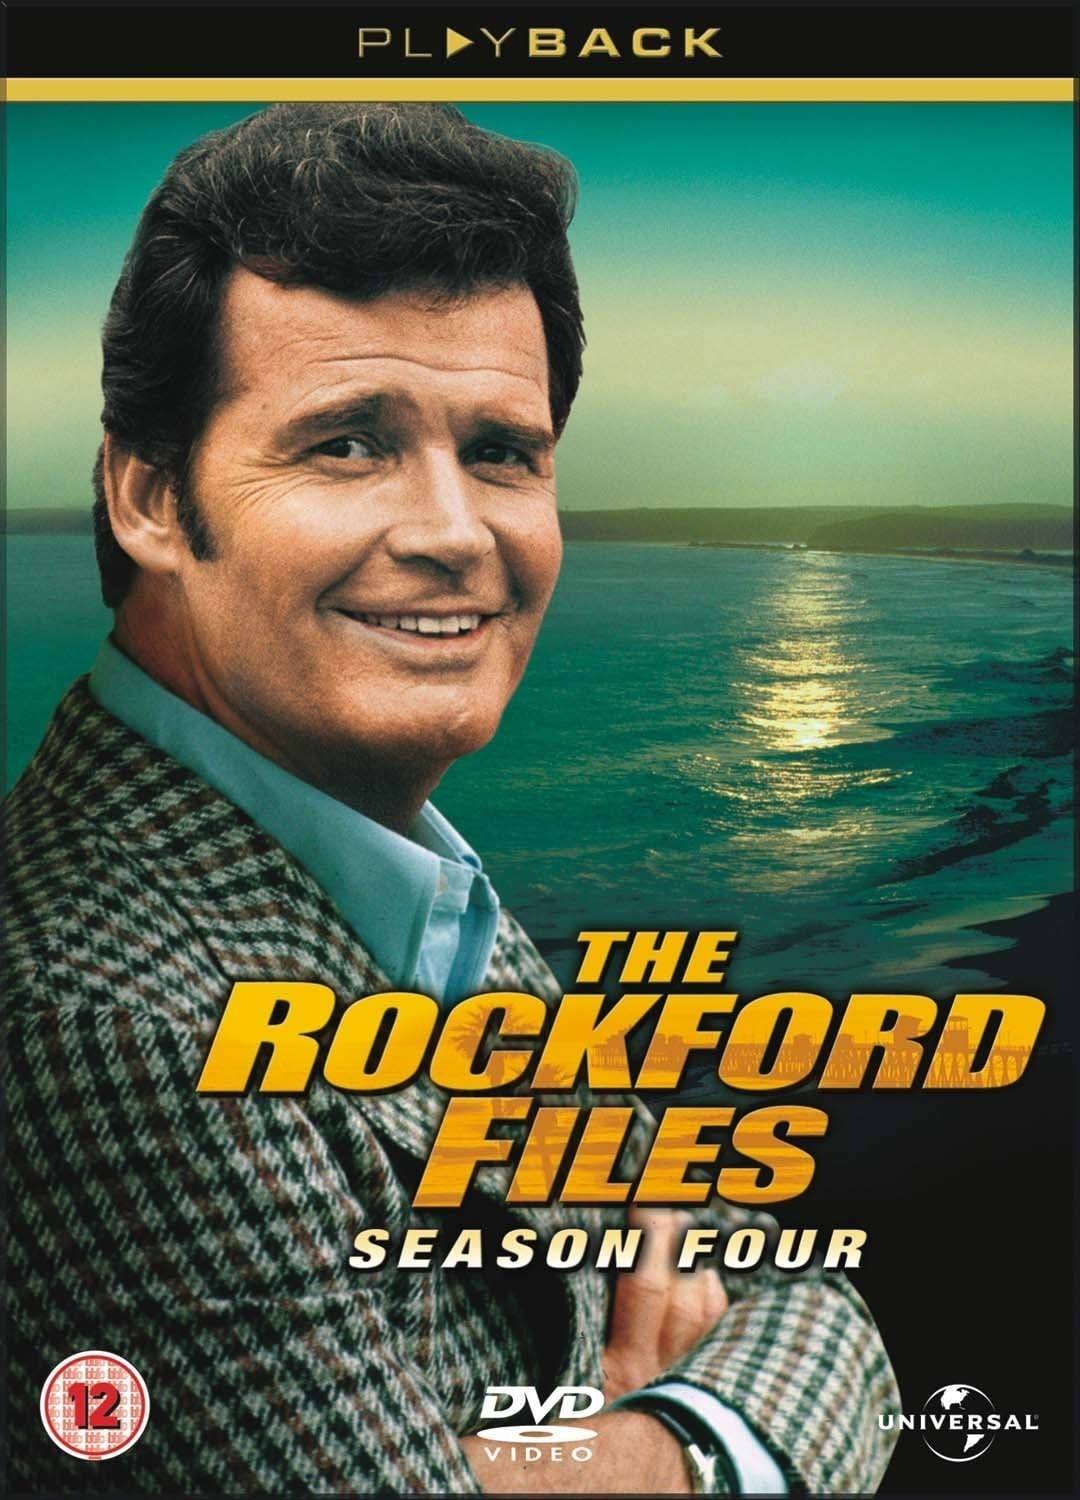 The Rockford Files Season 4